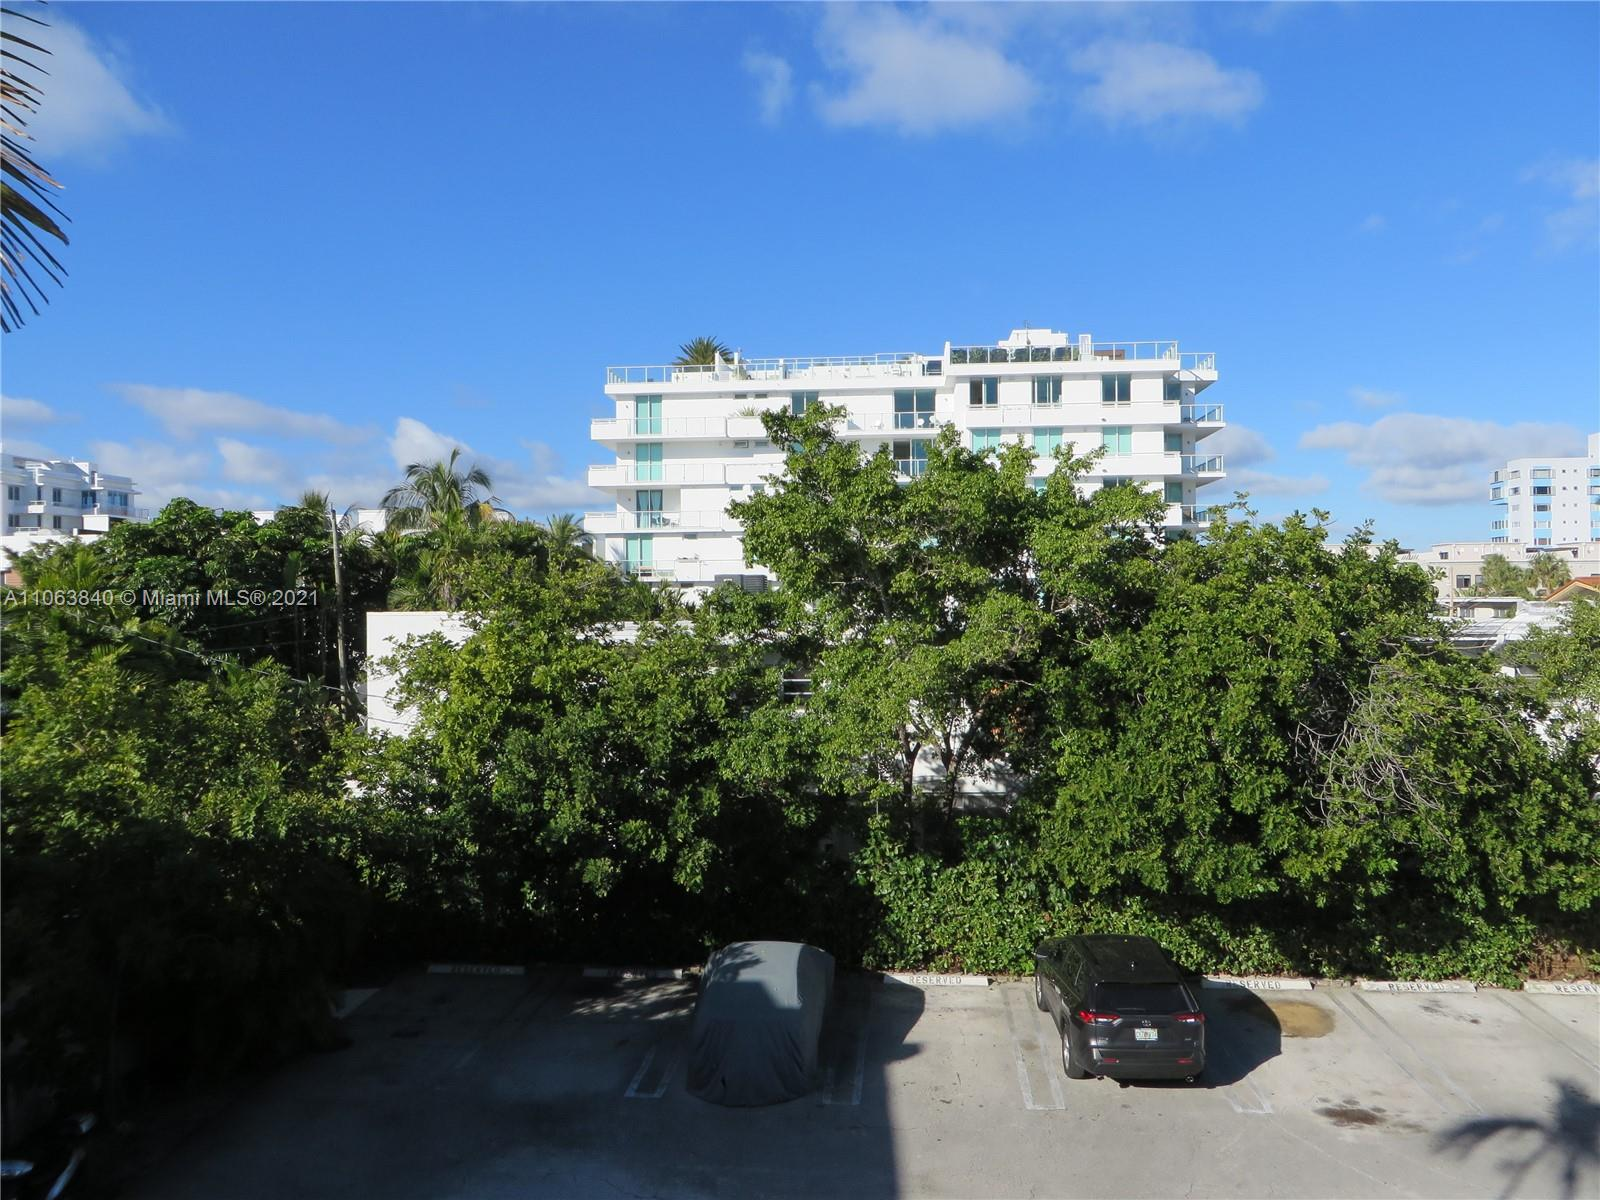 Gorgeous and redone 1 bdrm 1 bath in Bay Harbor Island in boutique building with pool! New kitchen with all new appliances! New bathroom! New flooring throughout! New Impact glass windows! This is the only unit in the bldg with walk in closet! Onsite parking! Onsite laundry! Presently rented until 3/10/21 ** please give 48 hour notice to show